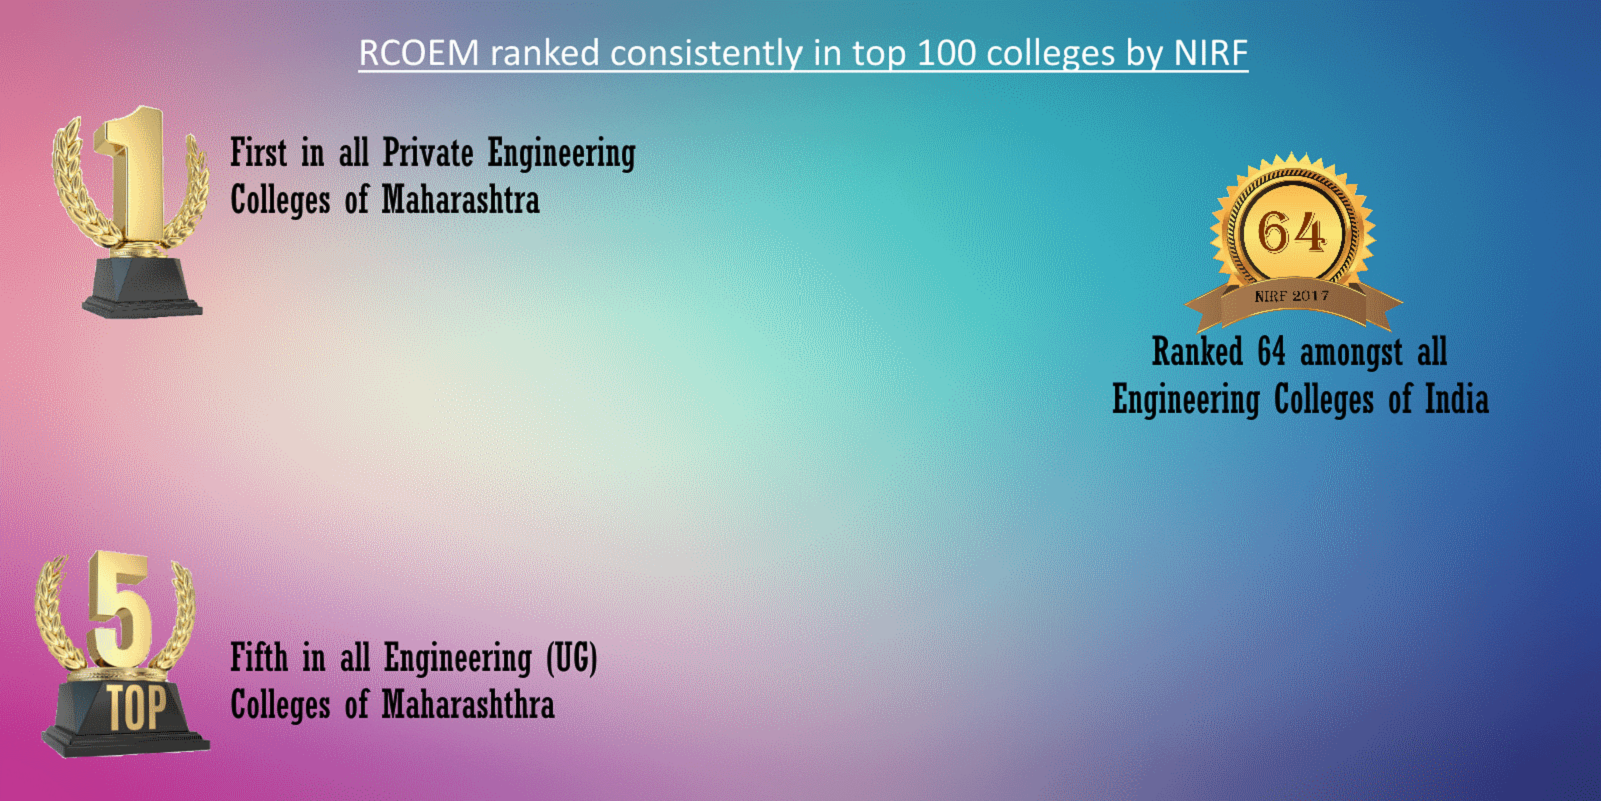 RCOEM consistently ranks Top 100 amongst all Engineering Colleges of India